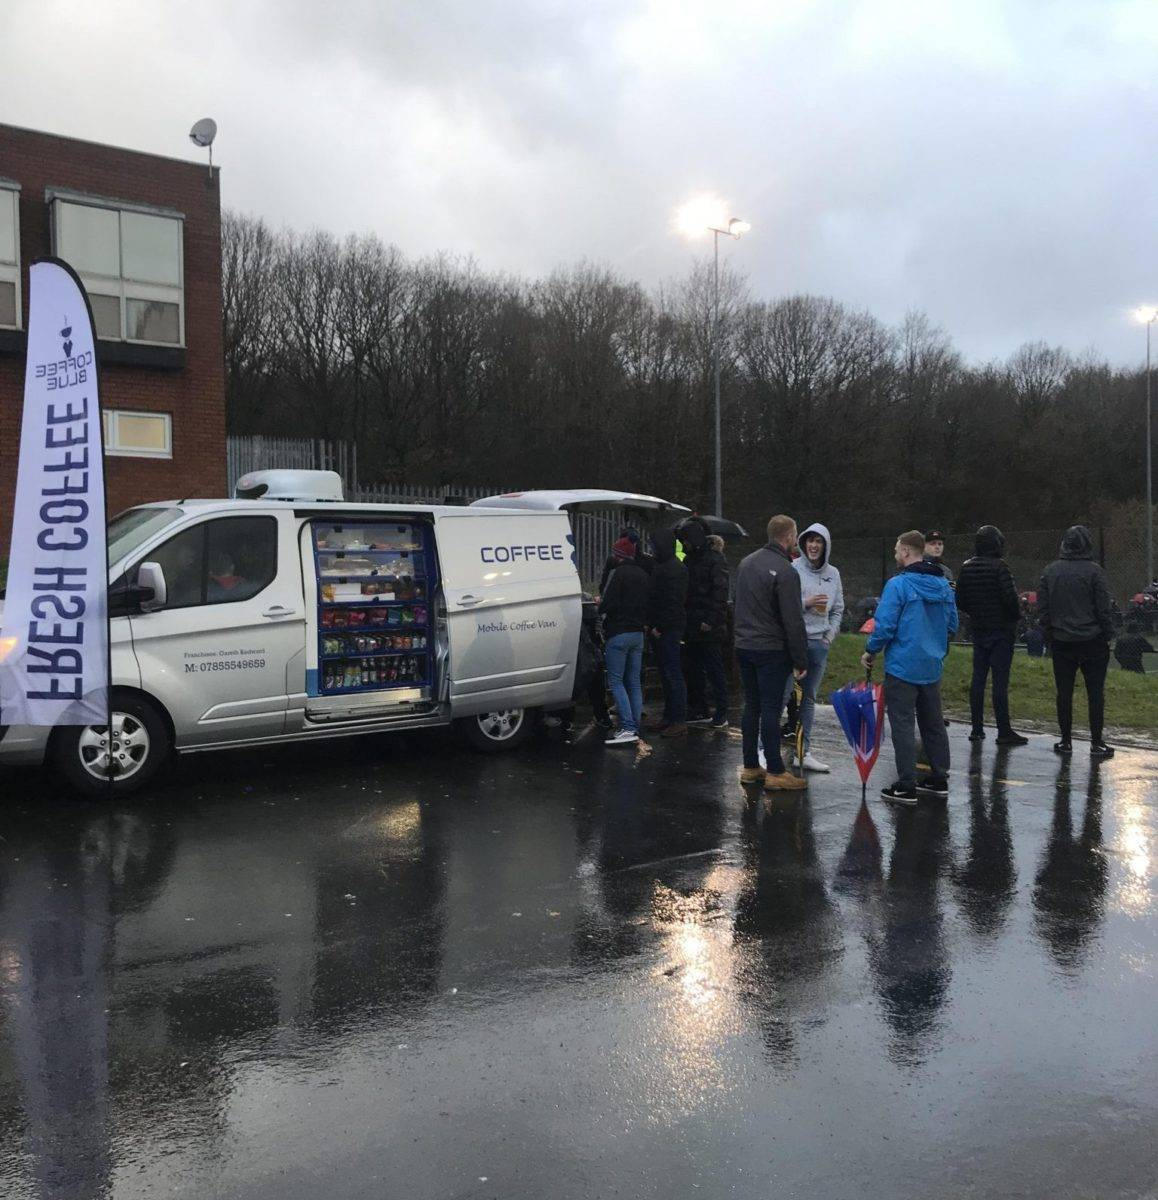 Coffee Blue in Caerphilly during an Event